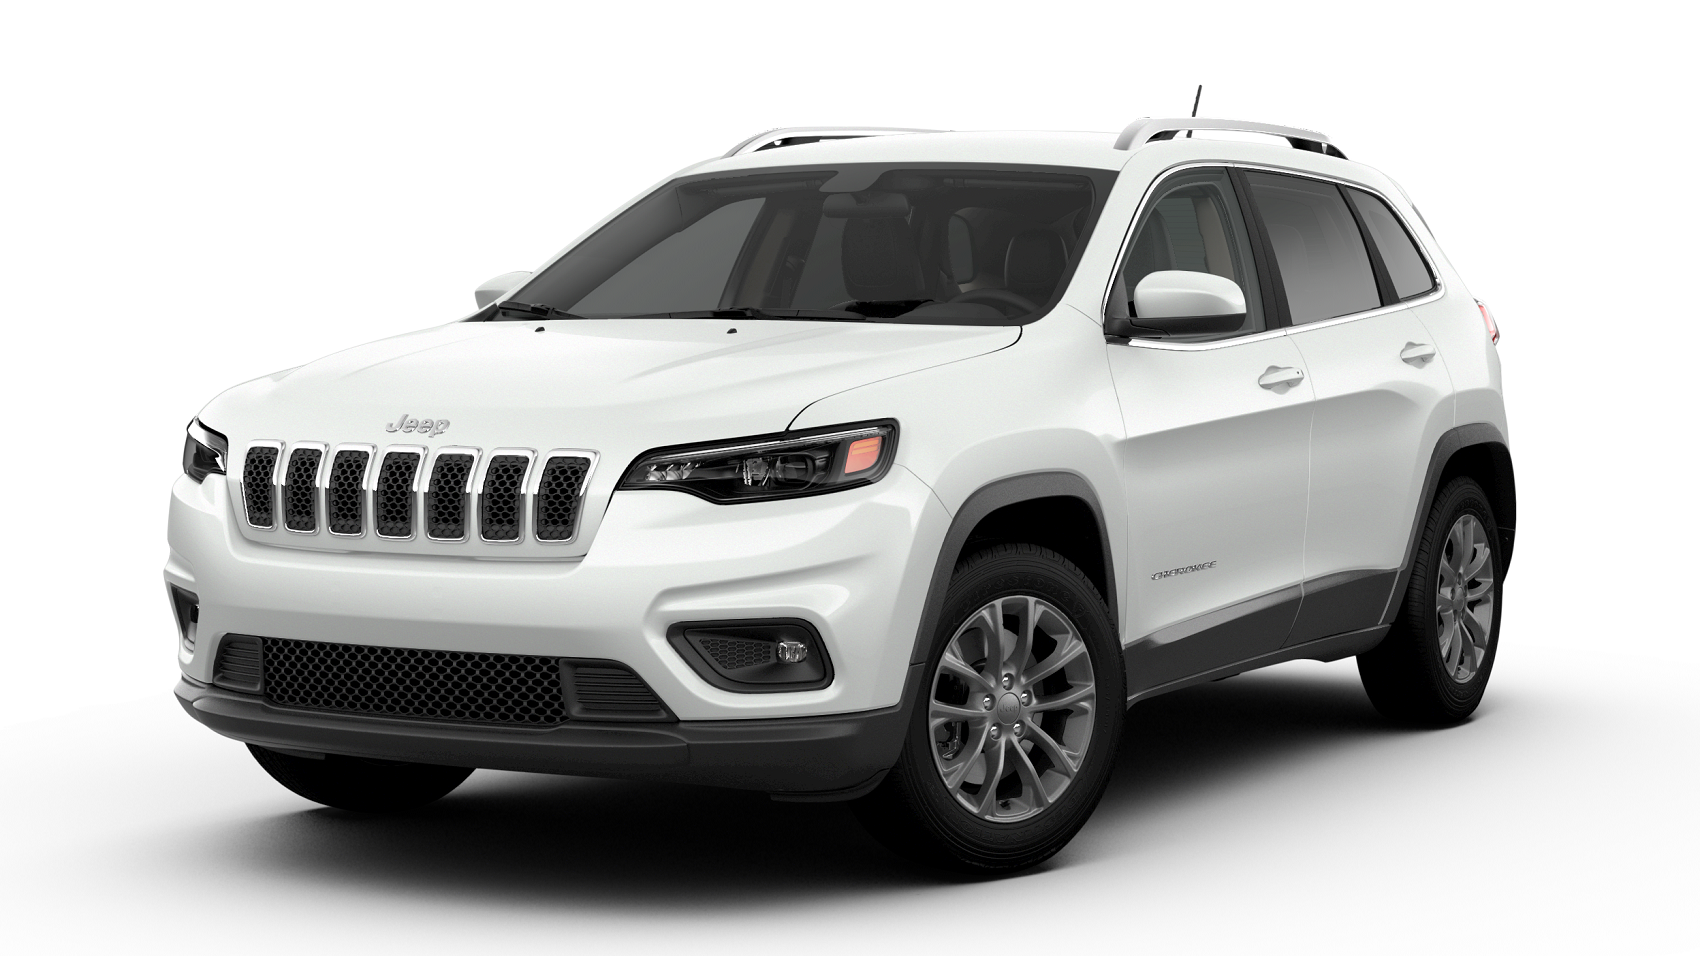 2019 Jeep Cherokee vs Honda CR-V Car Comparison